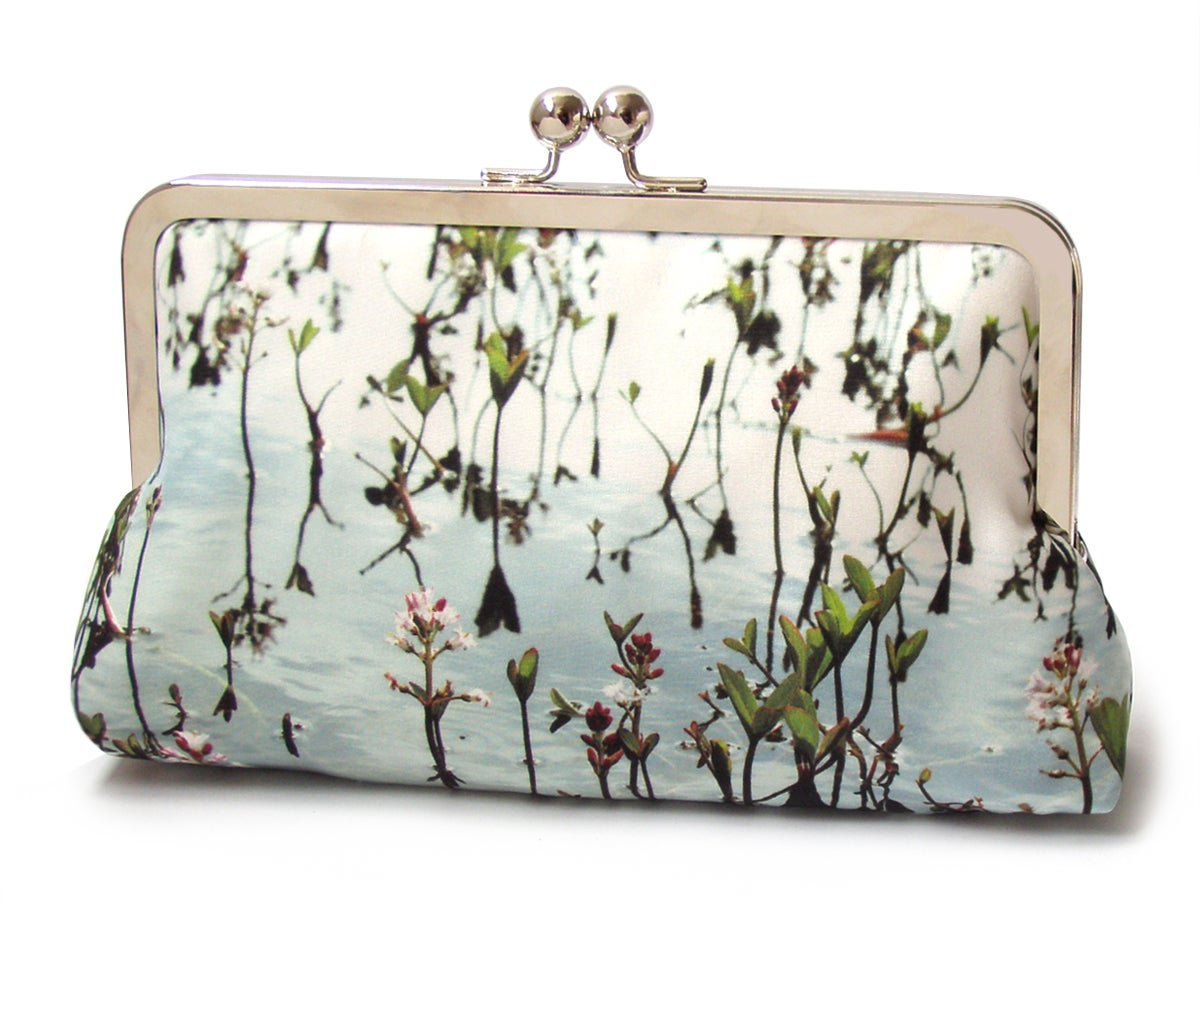 Image of Leaf clutch bag